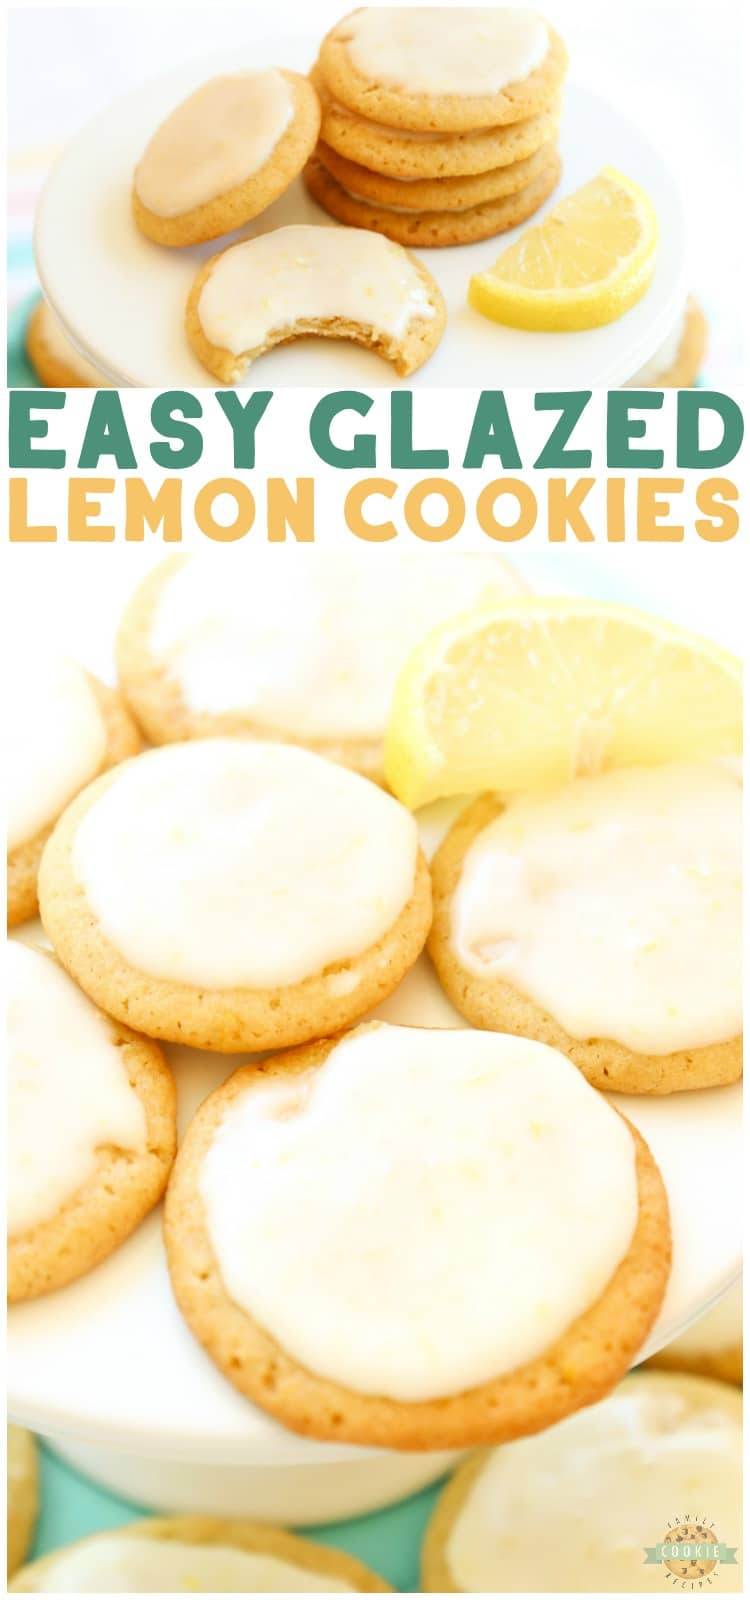 GLAZED LEMON COOKIES are sweet frosted lemon butter cookies made with fresh lemons. This delicious lemon cookie recipe is the perfect amount of sweet and tart.#cookies #lemon #dessert #baking #recipe from Family Cookie Recipes